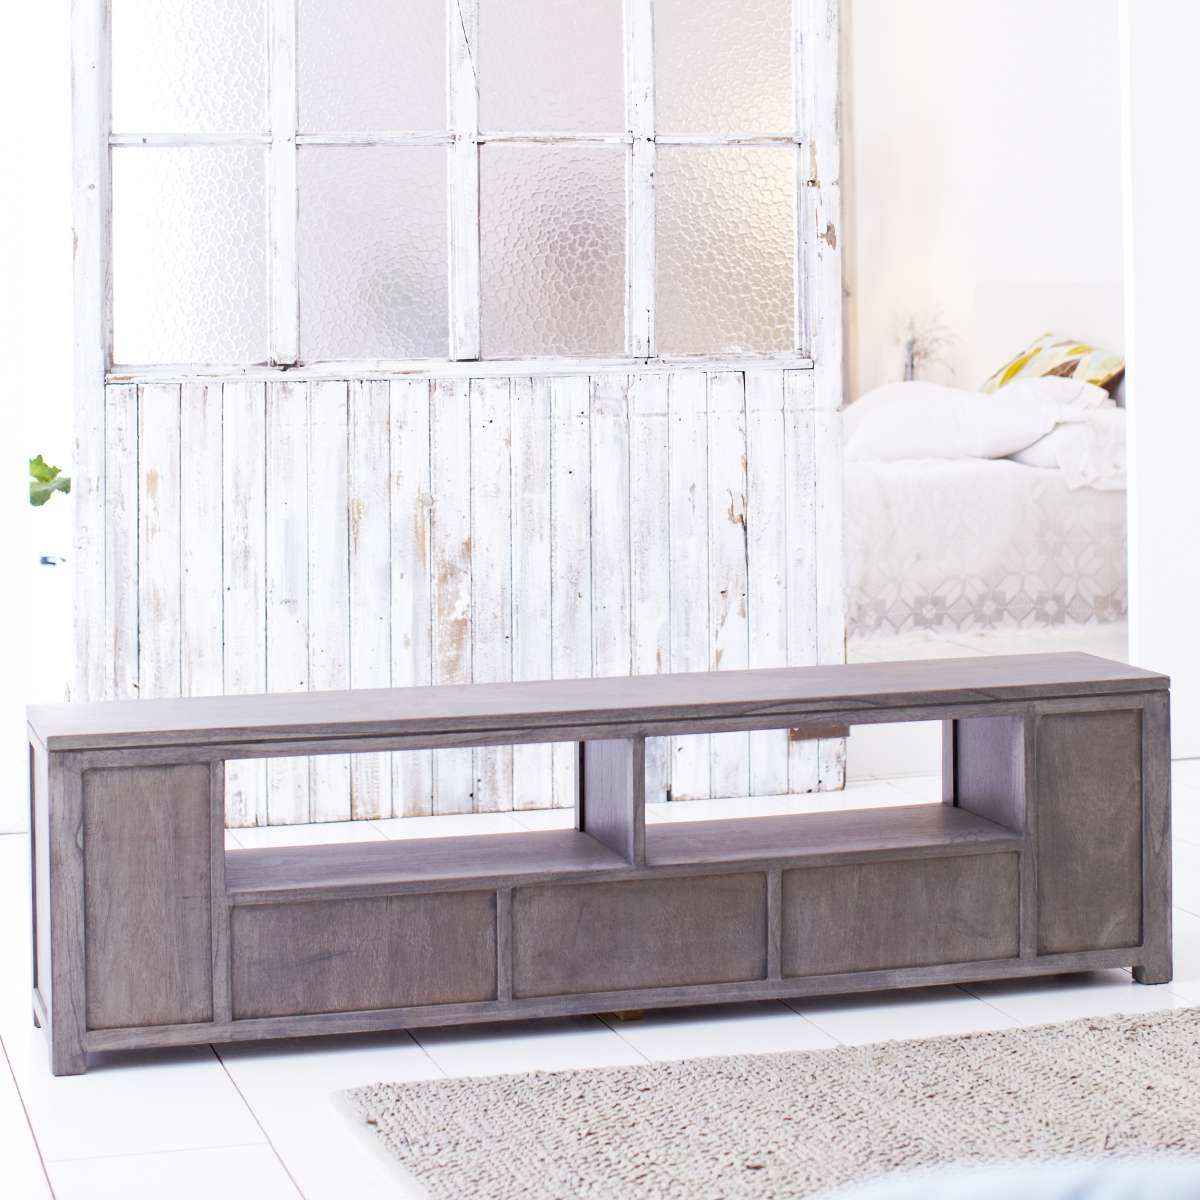 Solid Grey Tv Stand : How To Make Grey Tv Stand – Indoor & Outdoor Intended For Grey Wood Tv Stands (View 7 of 15)